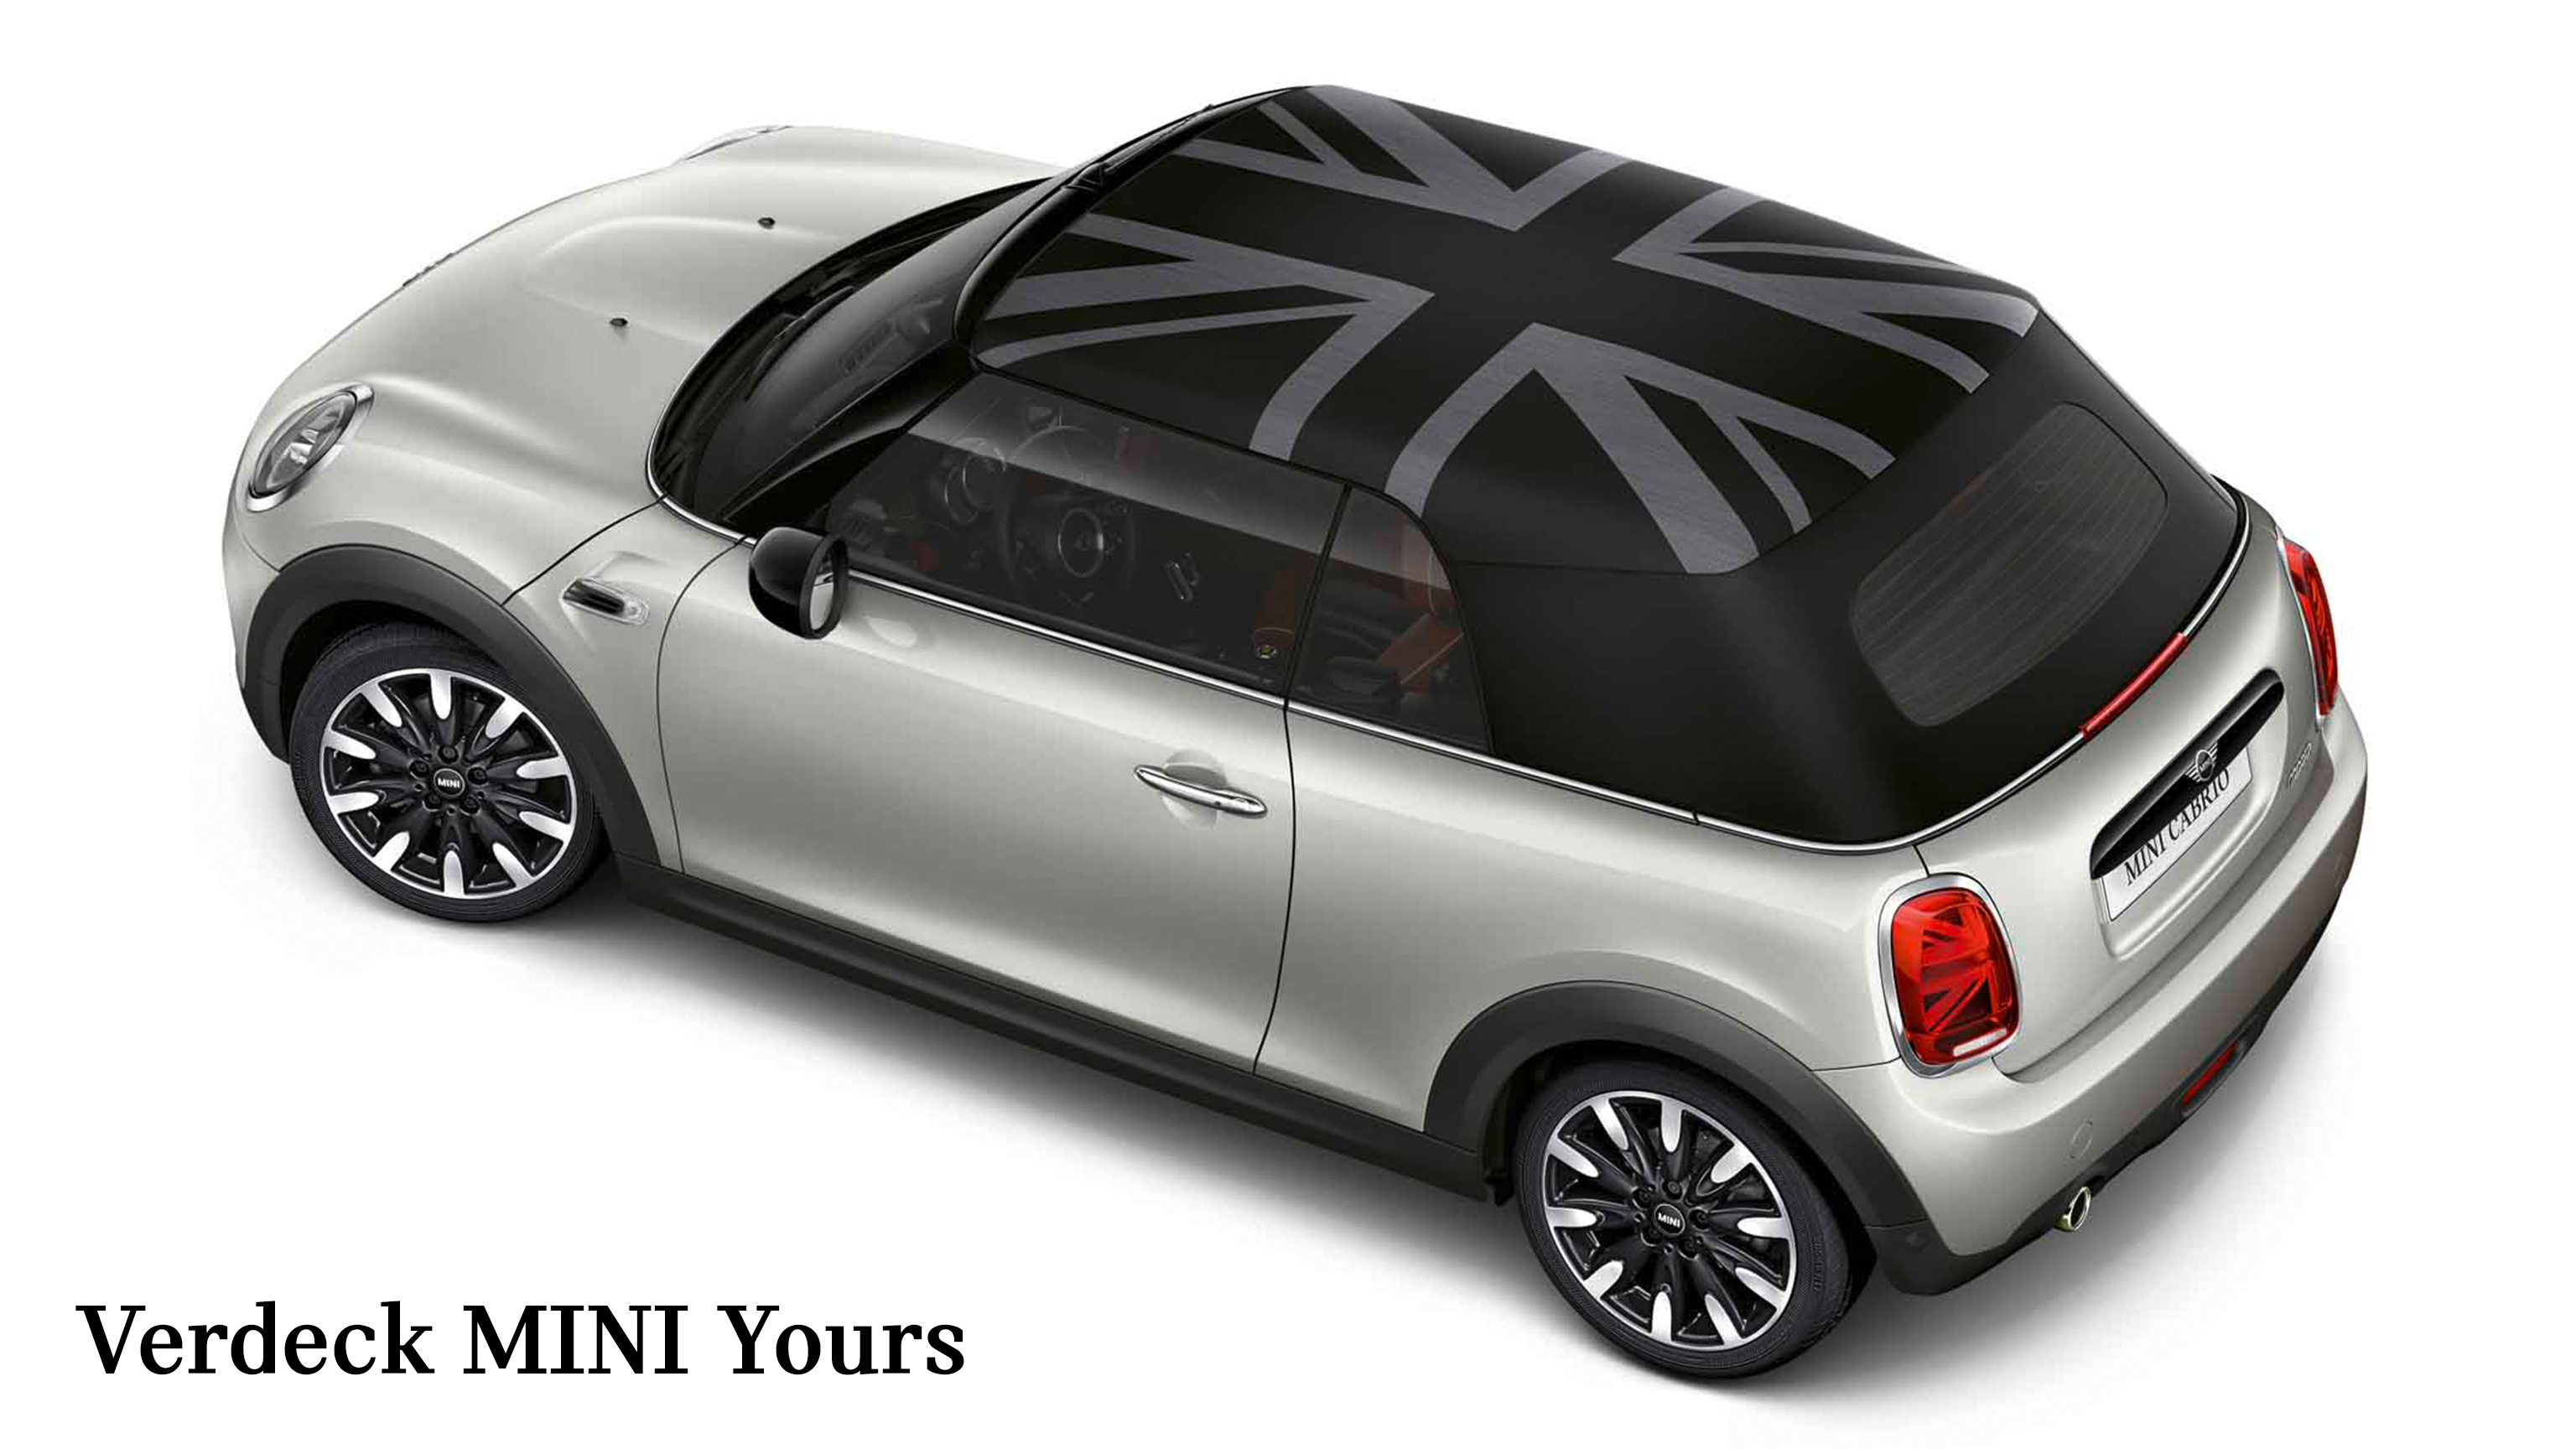 Union Jack Softtop